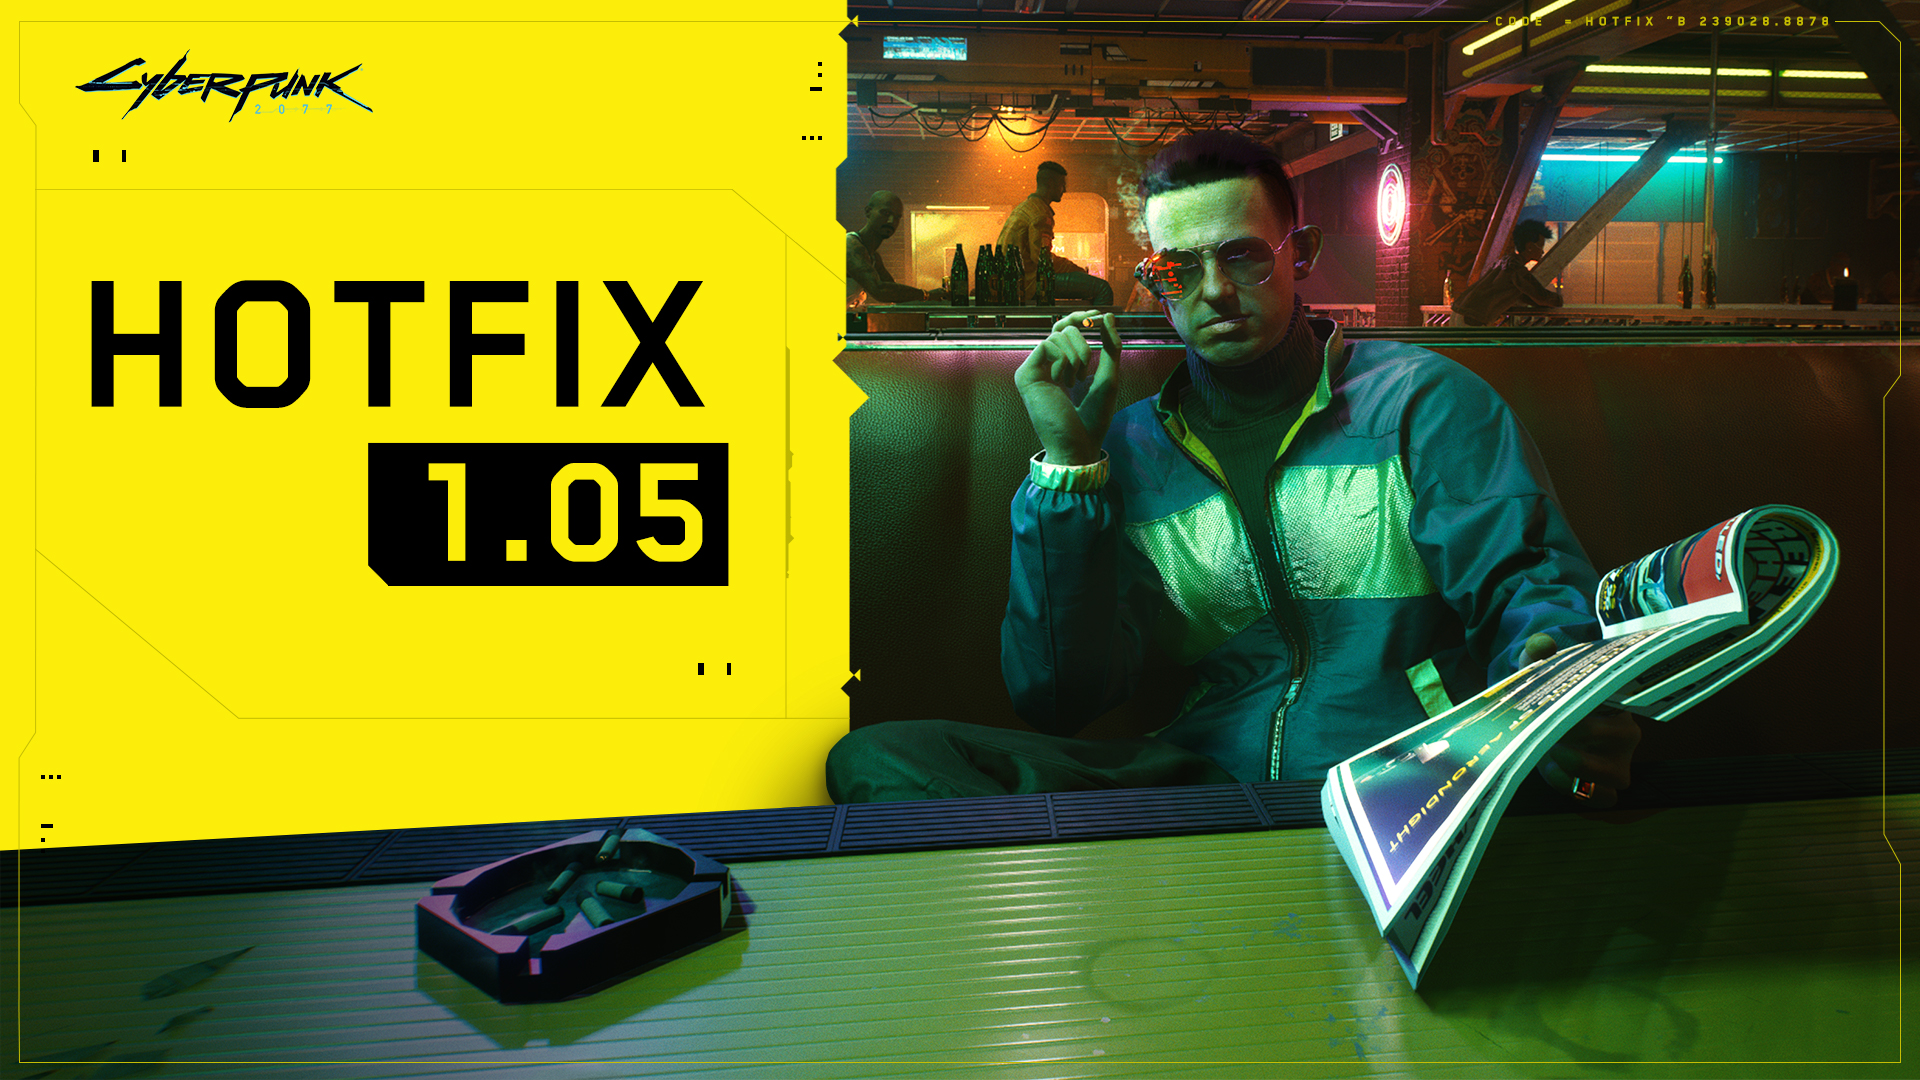 Cyberpunk 2077: disponibile l'hotfix 1.05 per PS4 e Xbox One